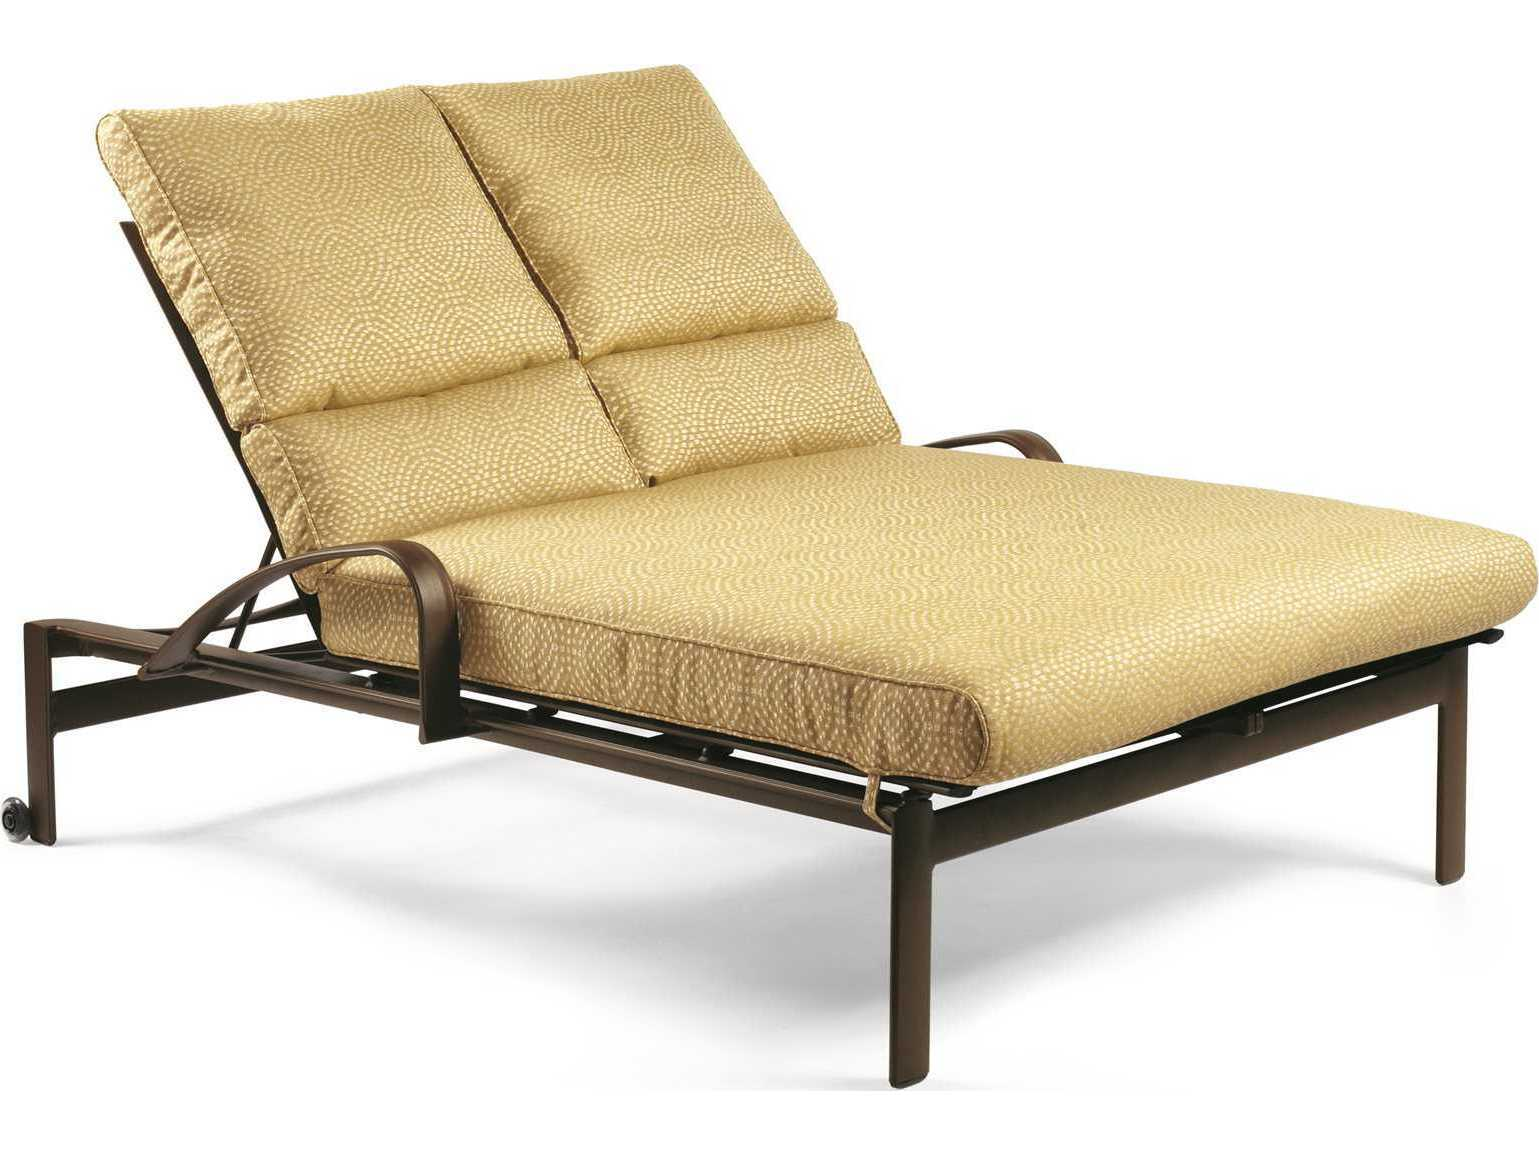 Winston Belvedere Cushion Double Chaise Lounge M29069